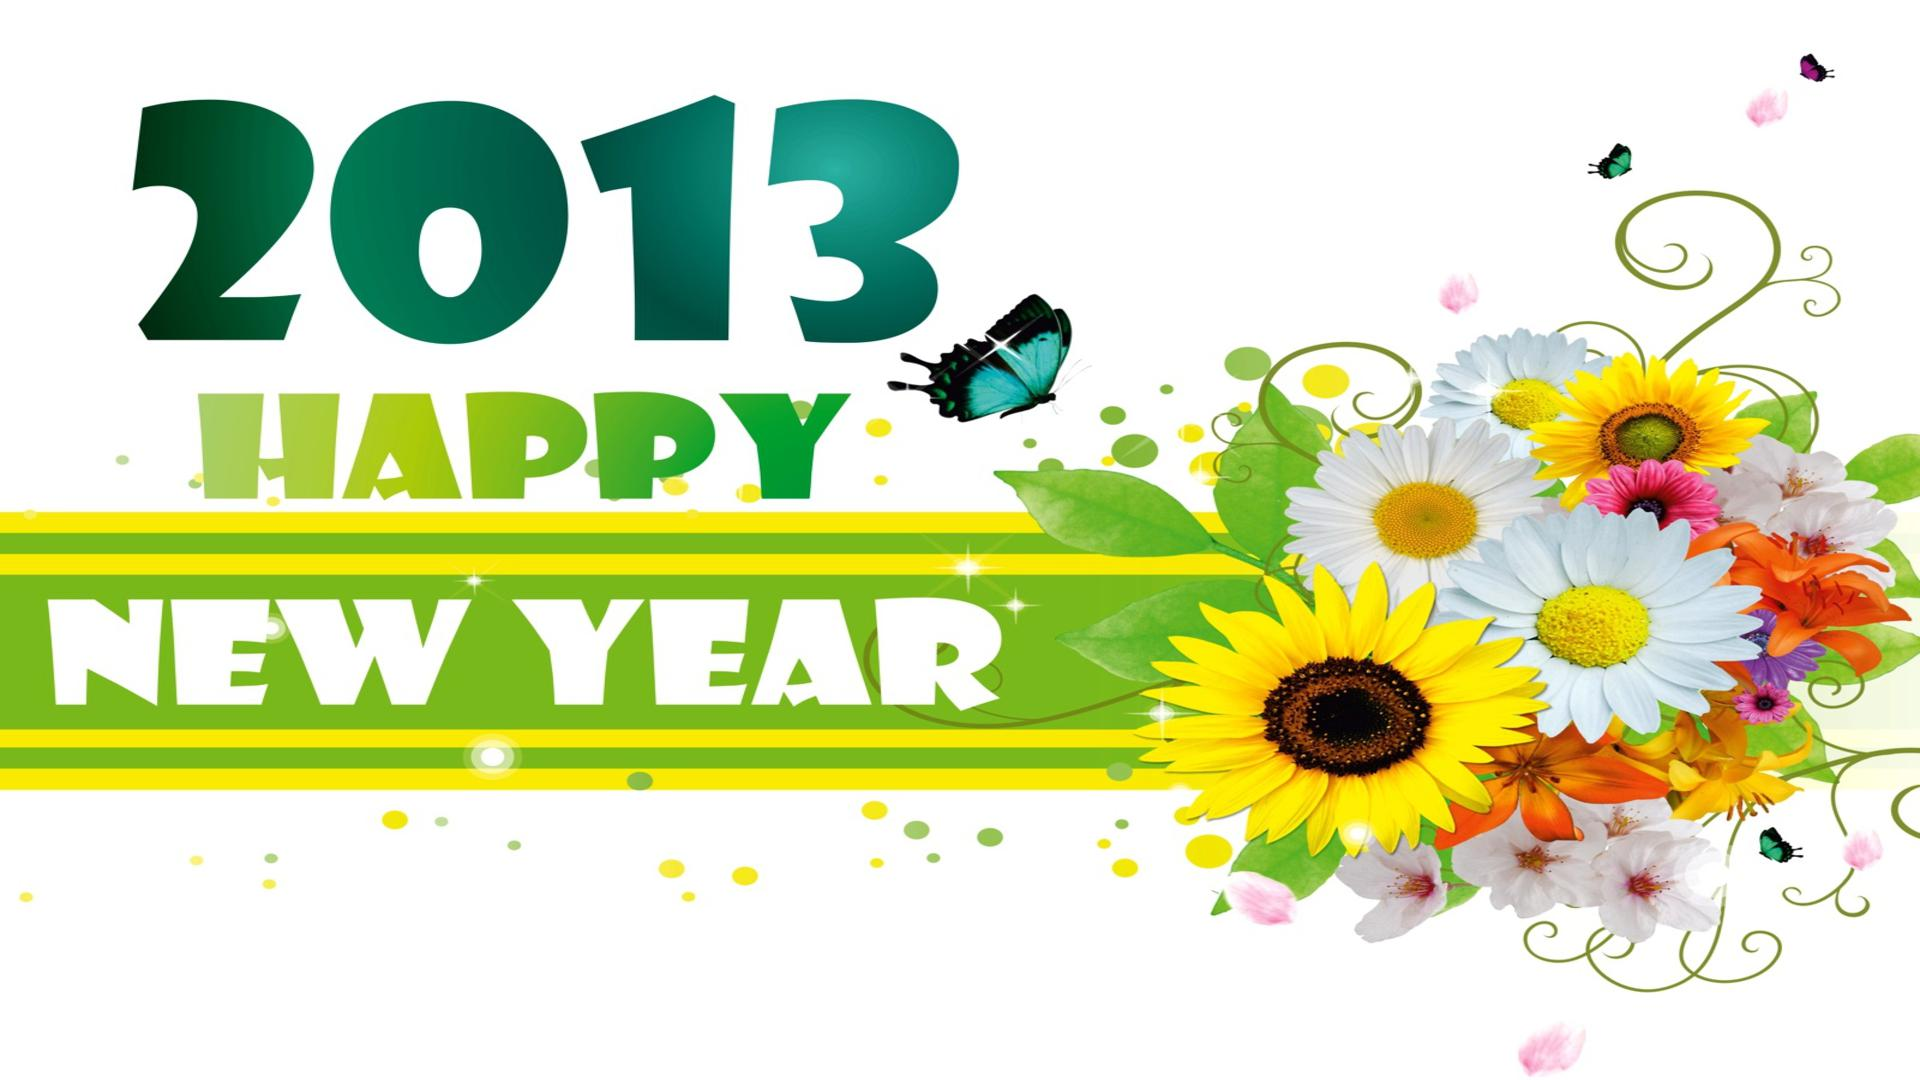 Happy New Year Graphics and Gif Animation for Facebook